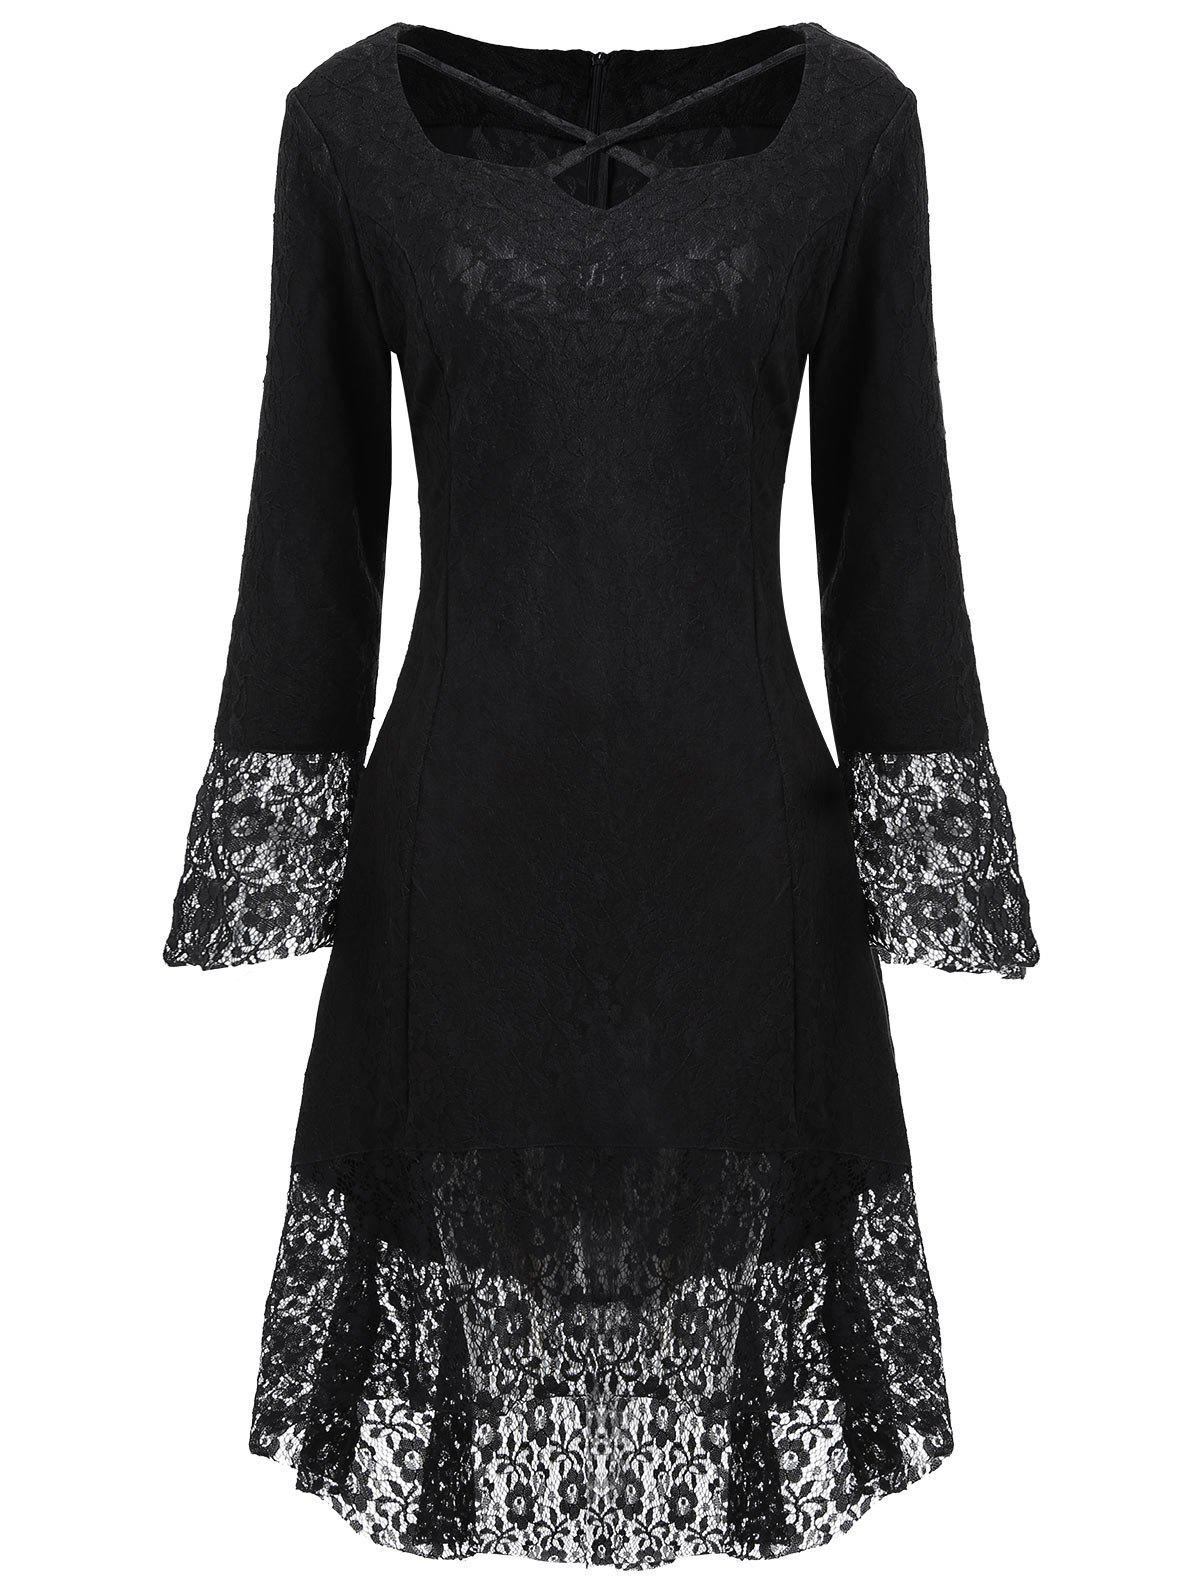 Sweetheart Neck Brocade Lace Dress - BLACK 2XL